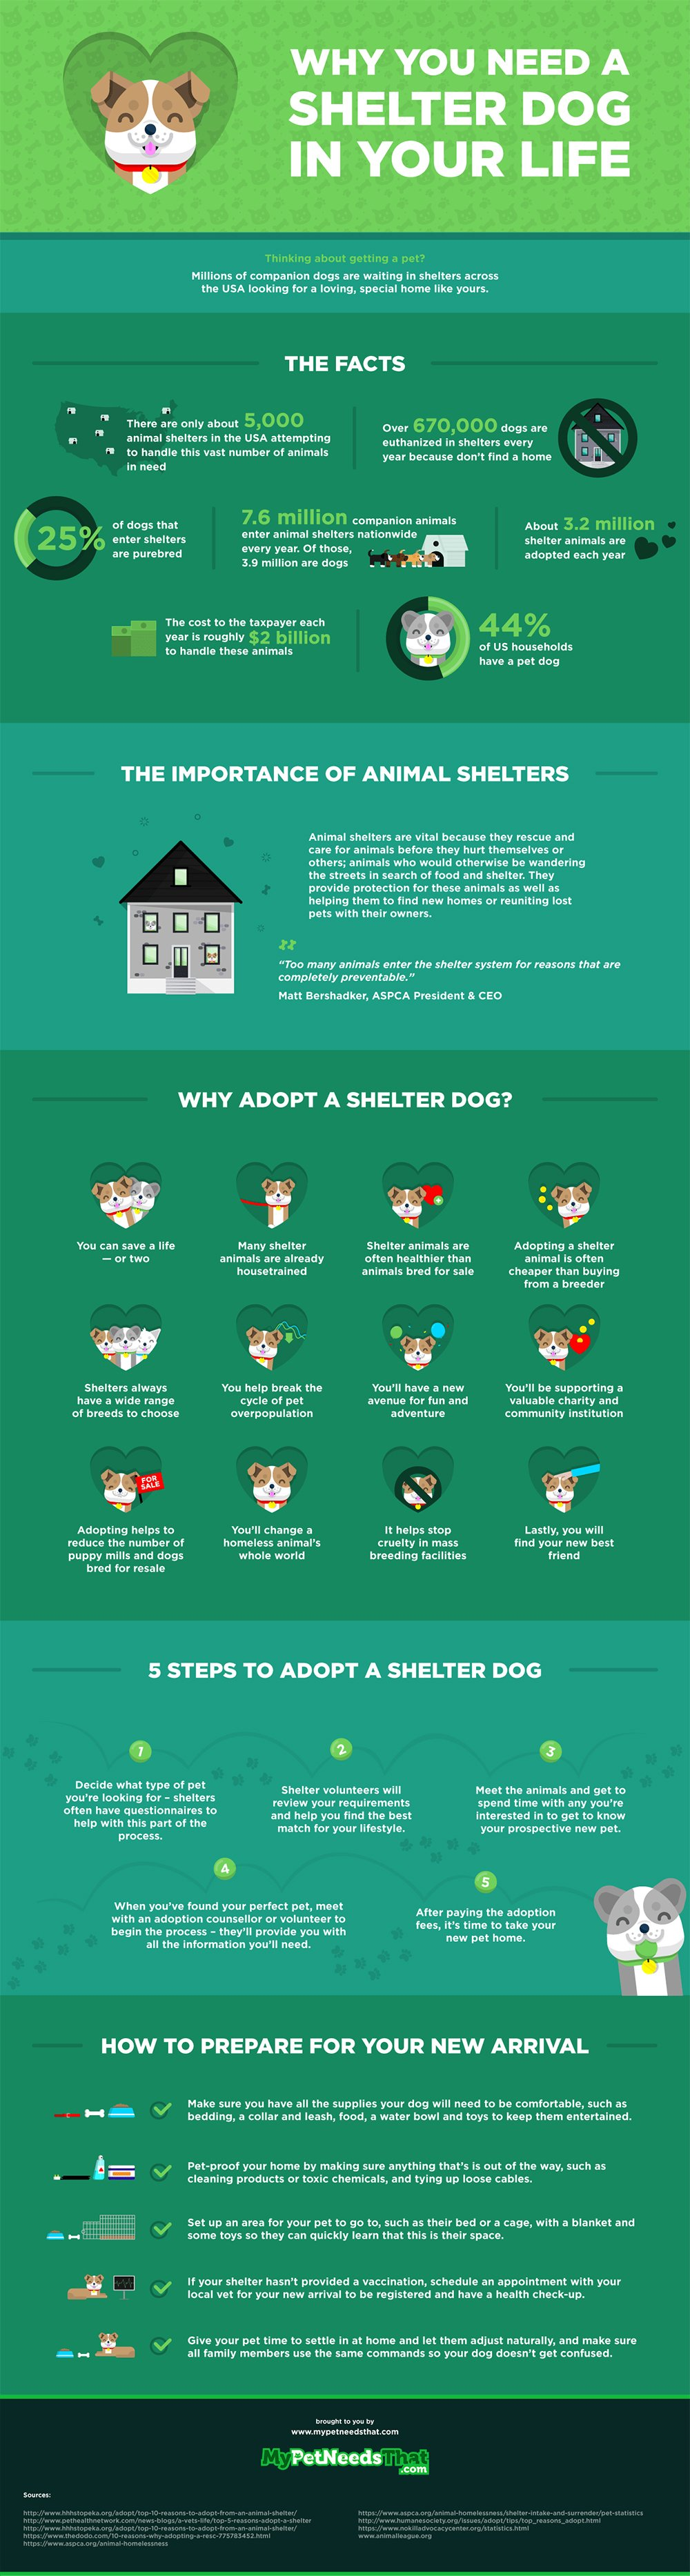 Adopting a Shelter Dog